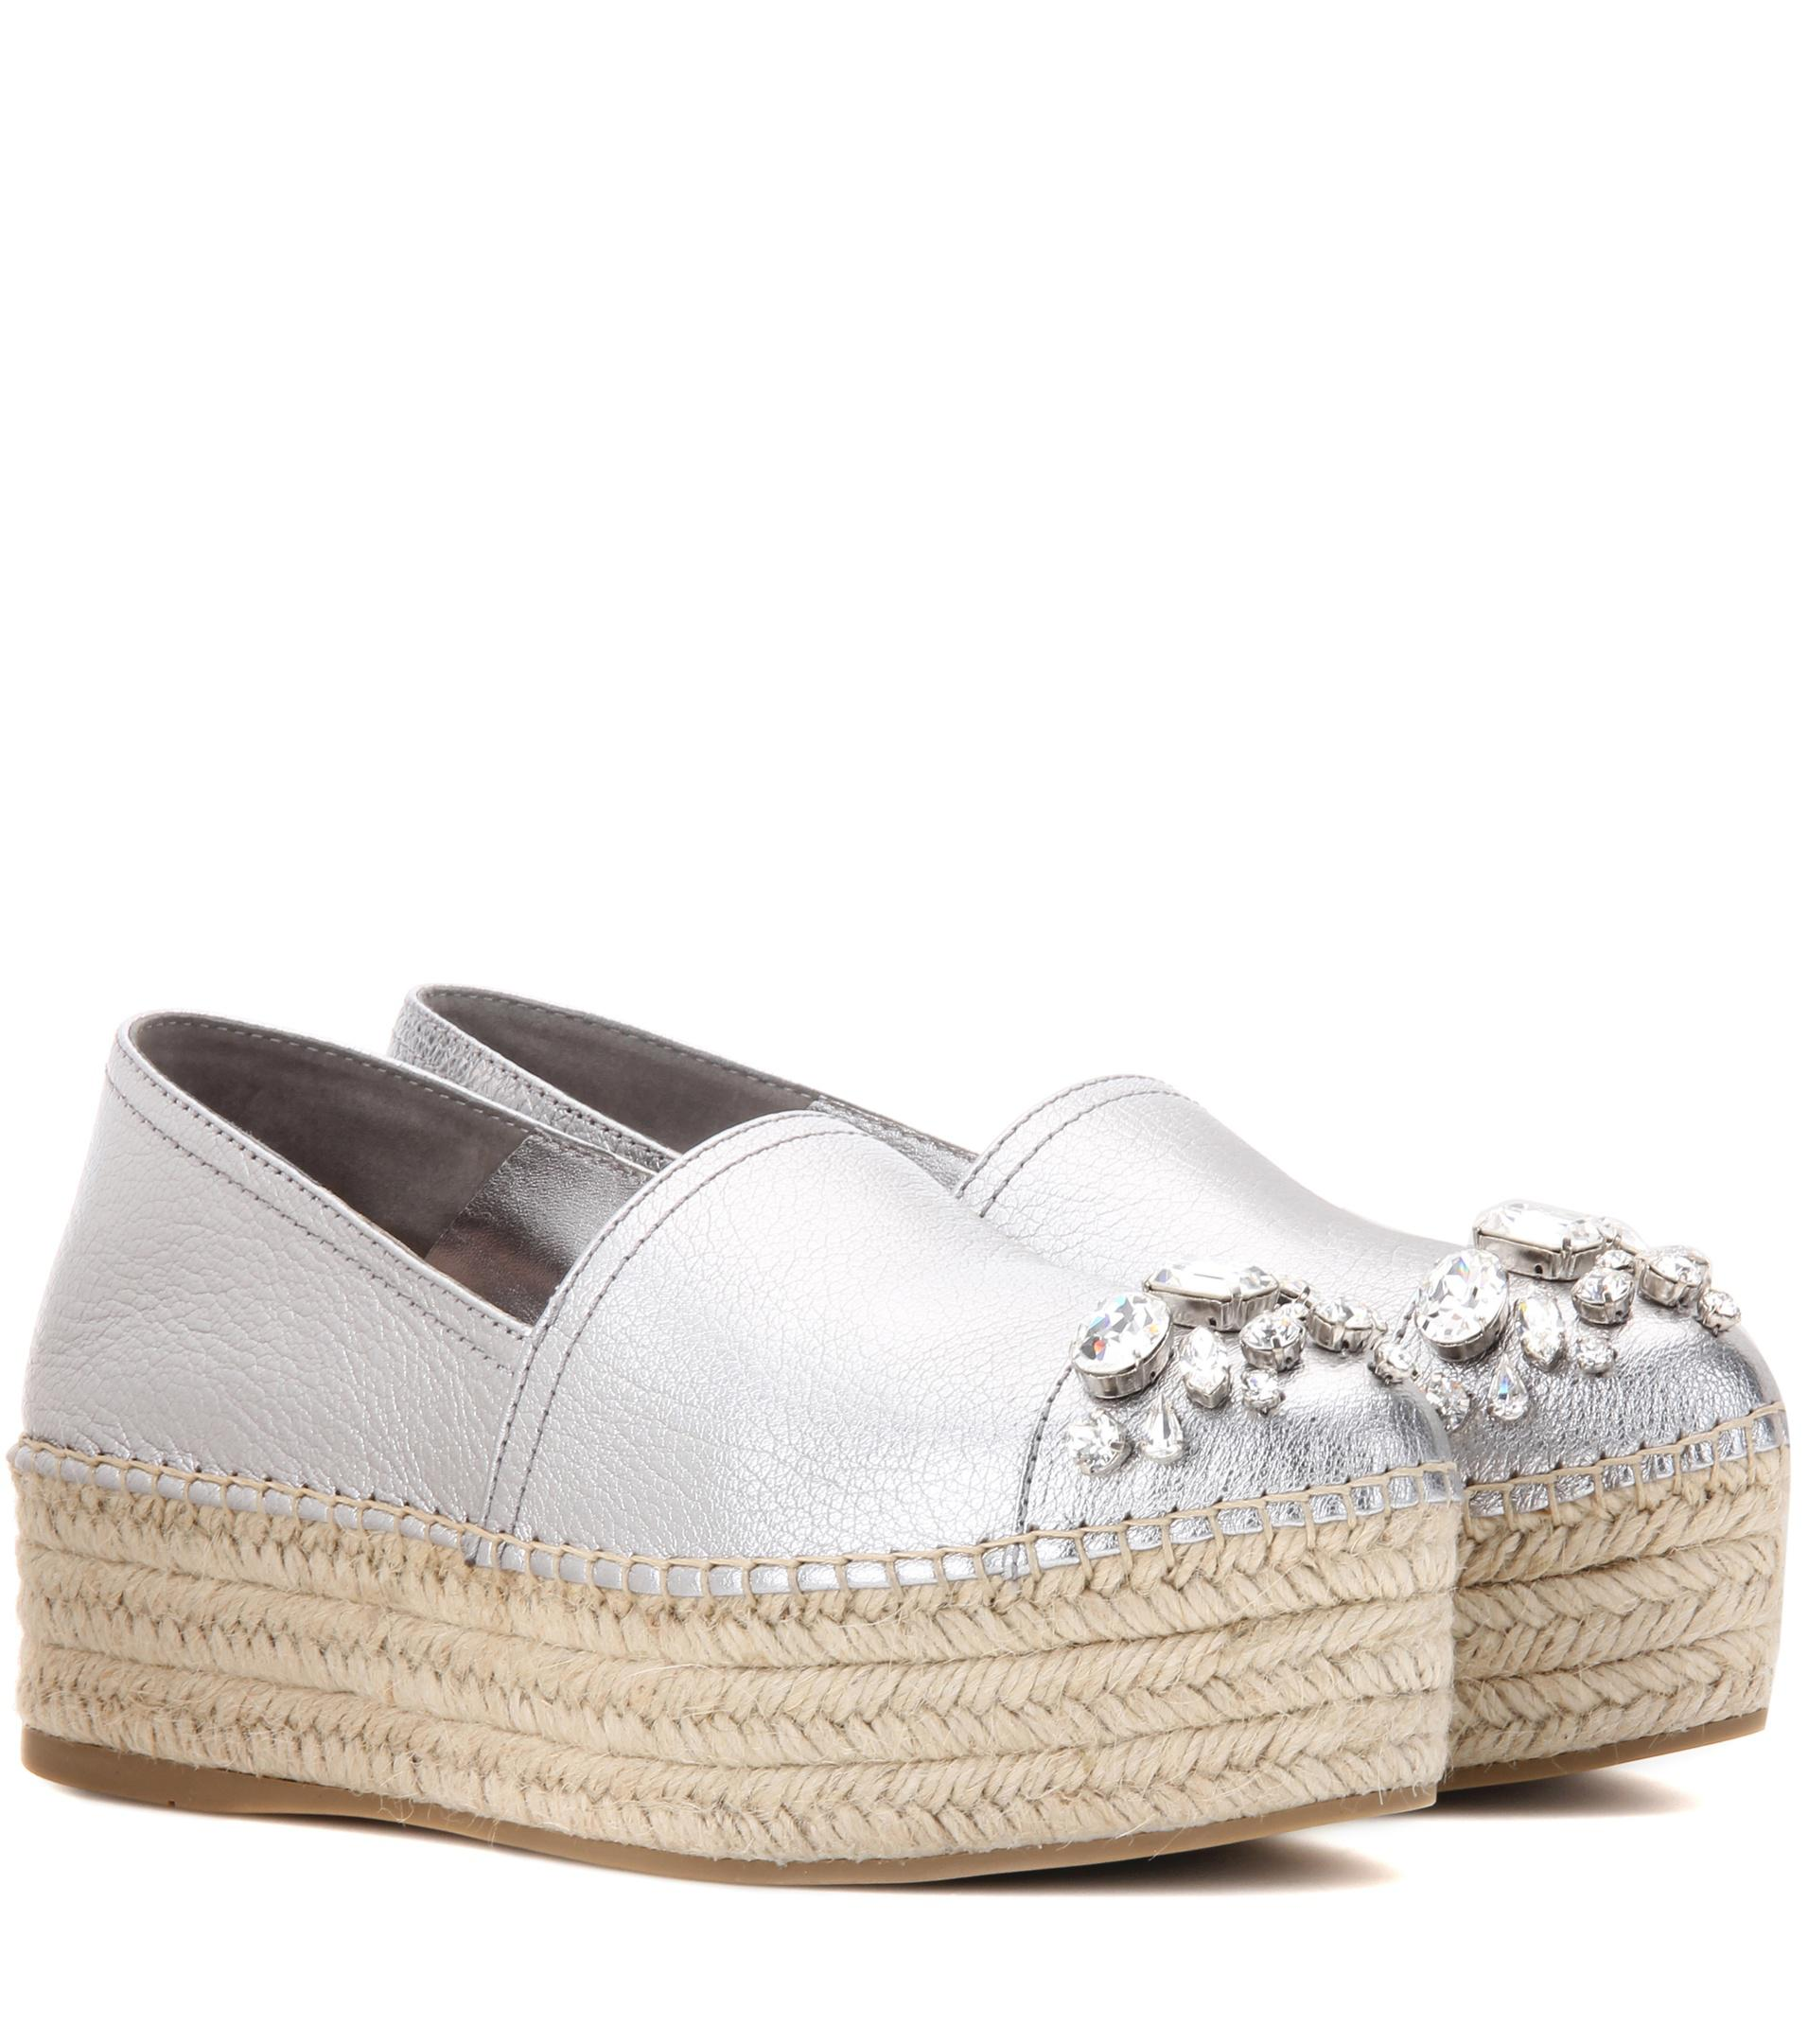 exclusive online for sale cheap price Miu Miu Embellished Platform Espadrilles great deals cheap price RcDgNjLDHA